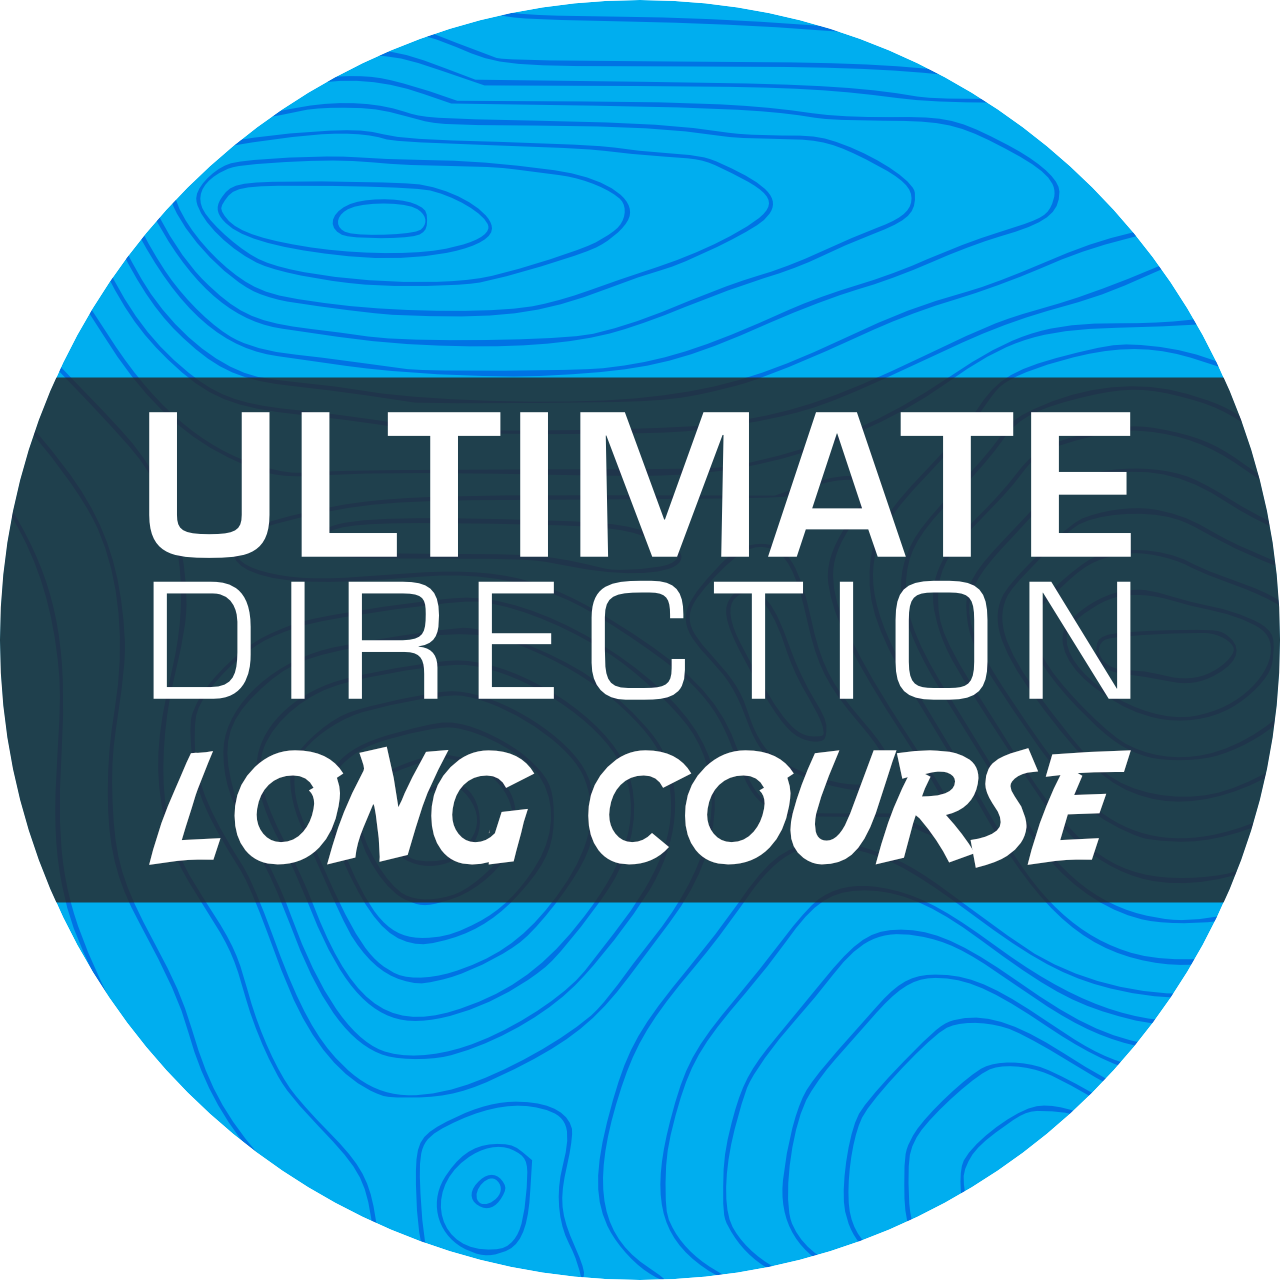 Ultimate Direction Long Course